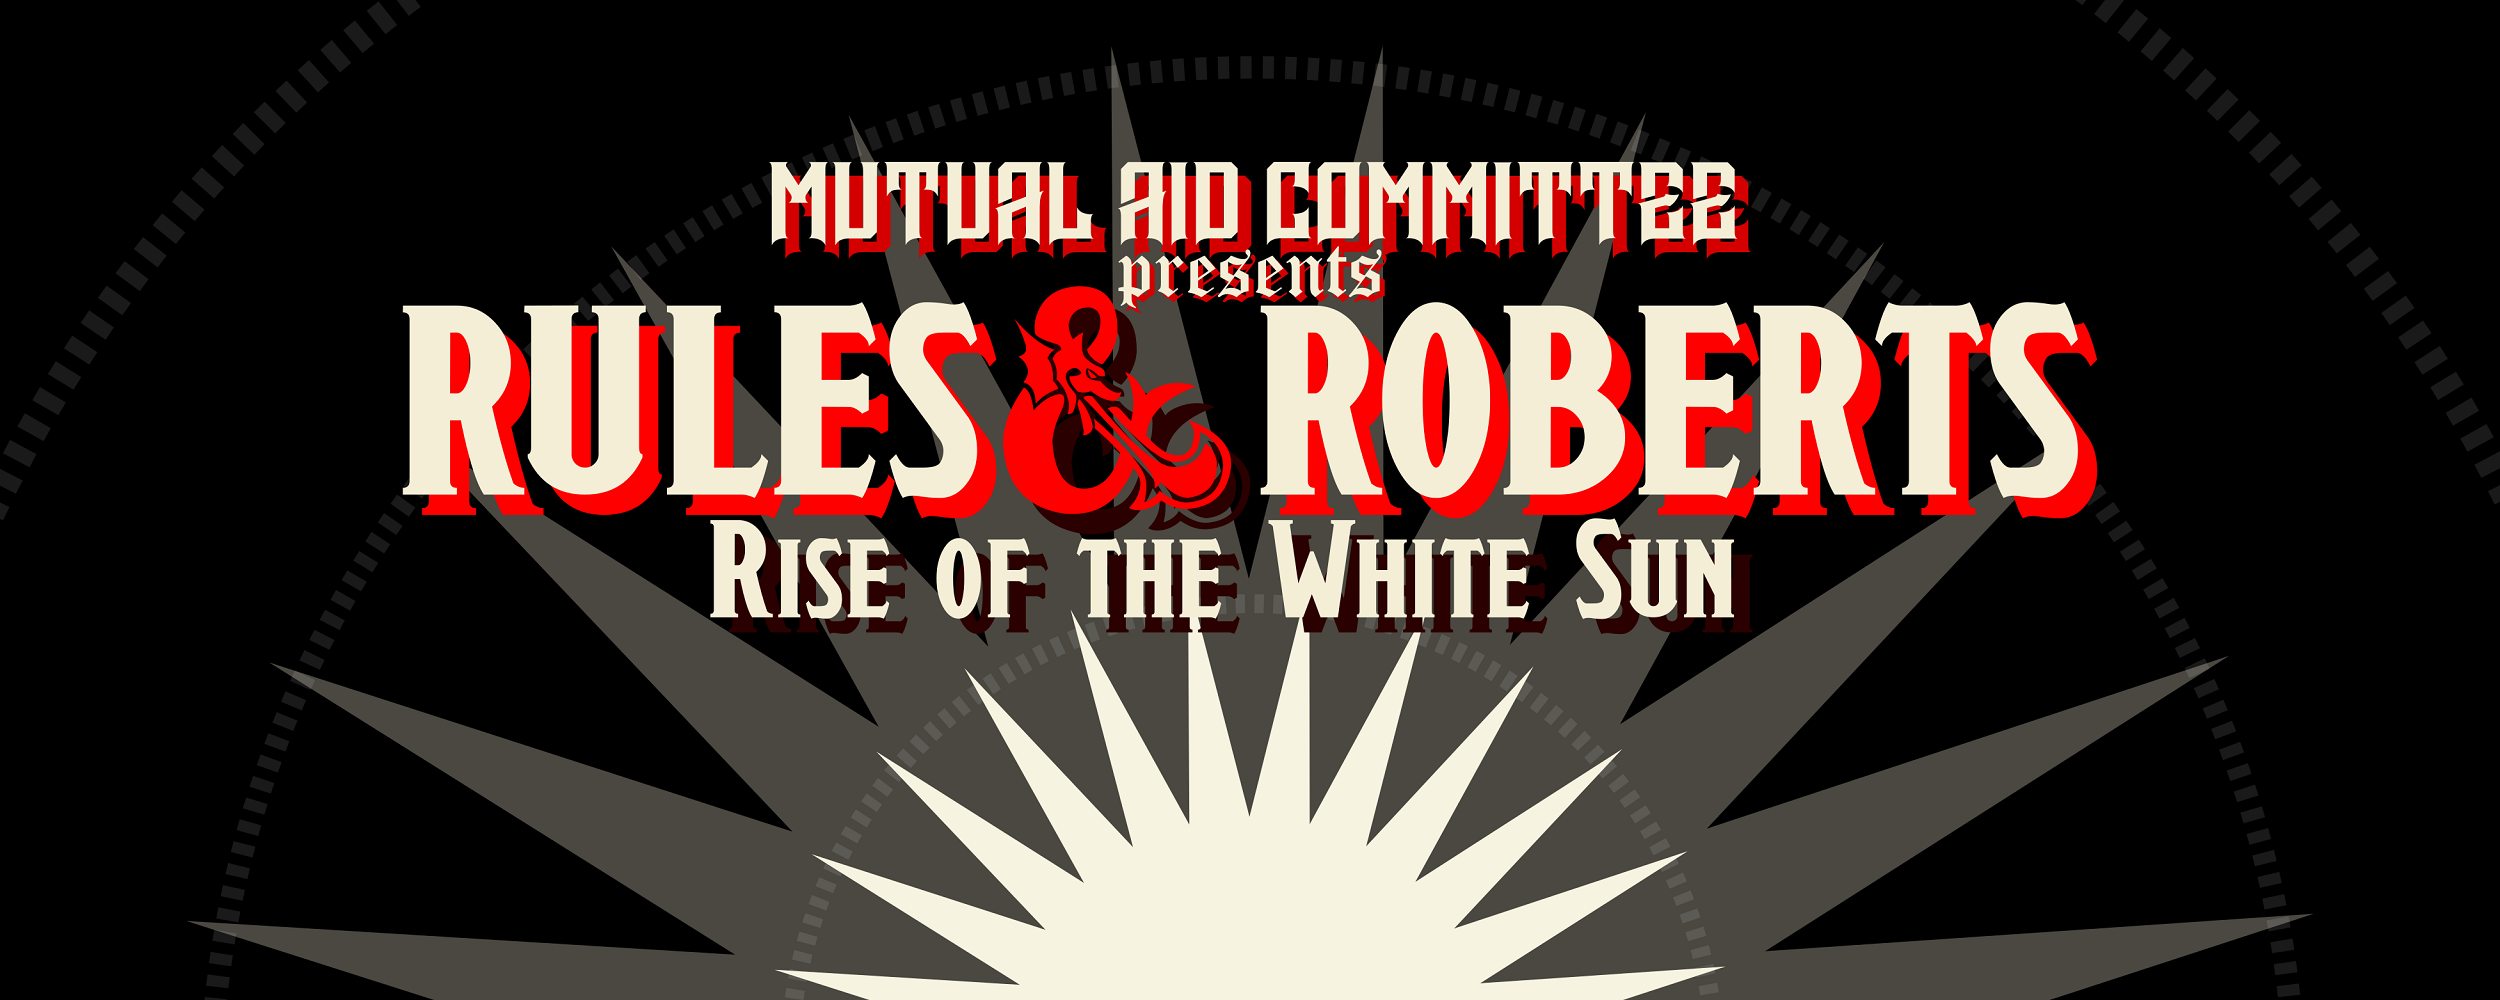 Rules and Roberts: Rise of the White Sun- a game to learn parlimentary procedure with the Mutual Aid Committee.